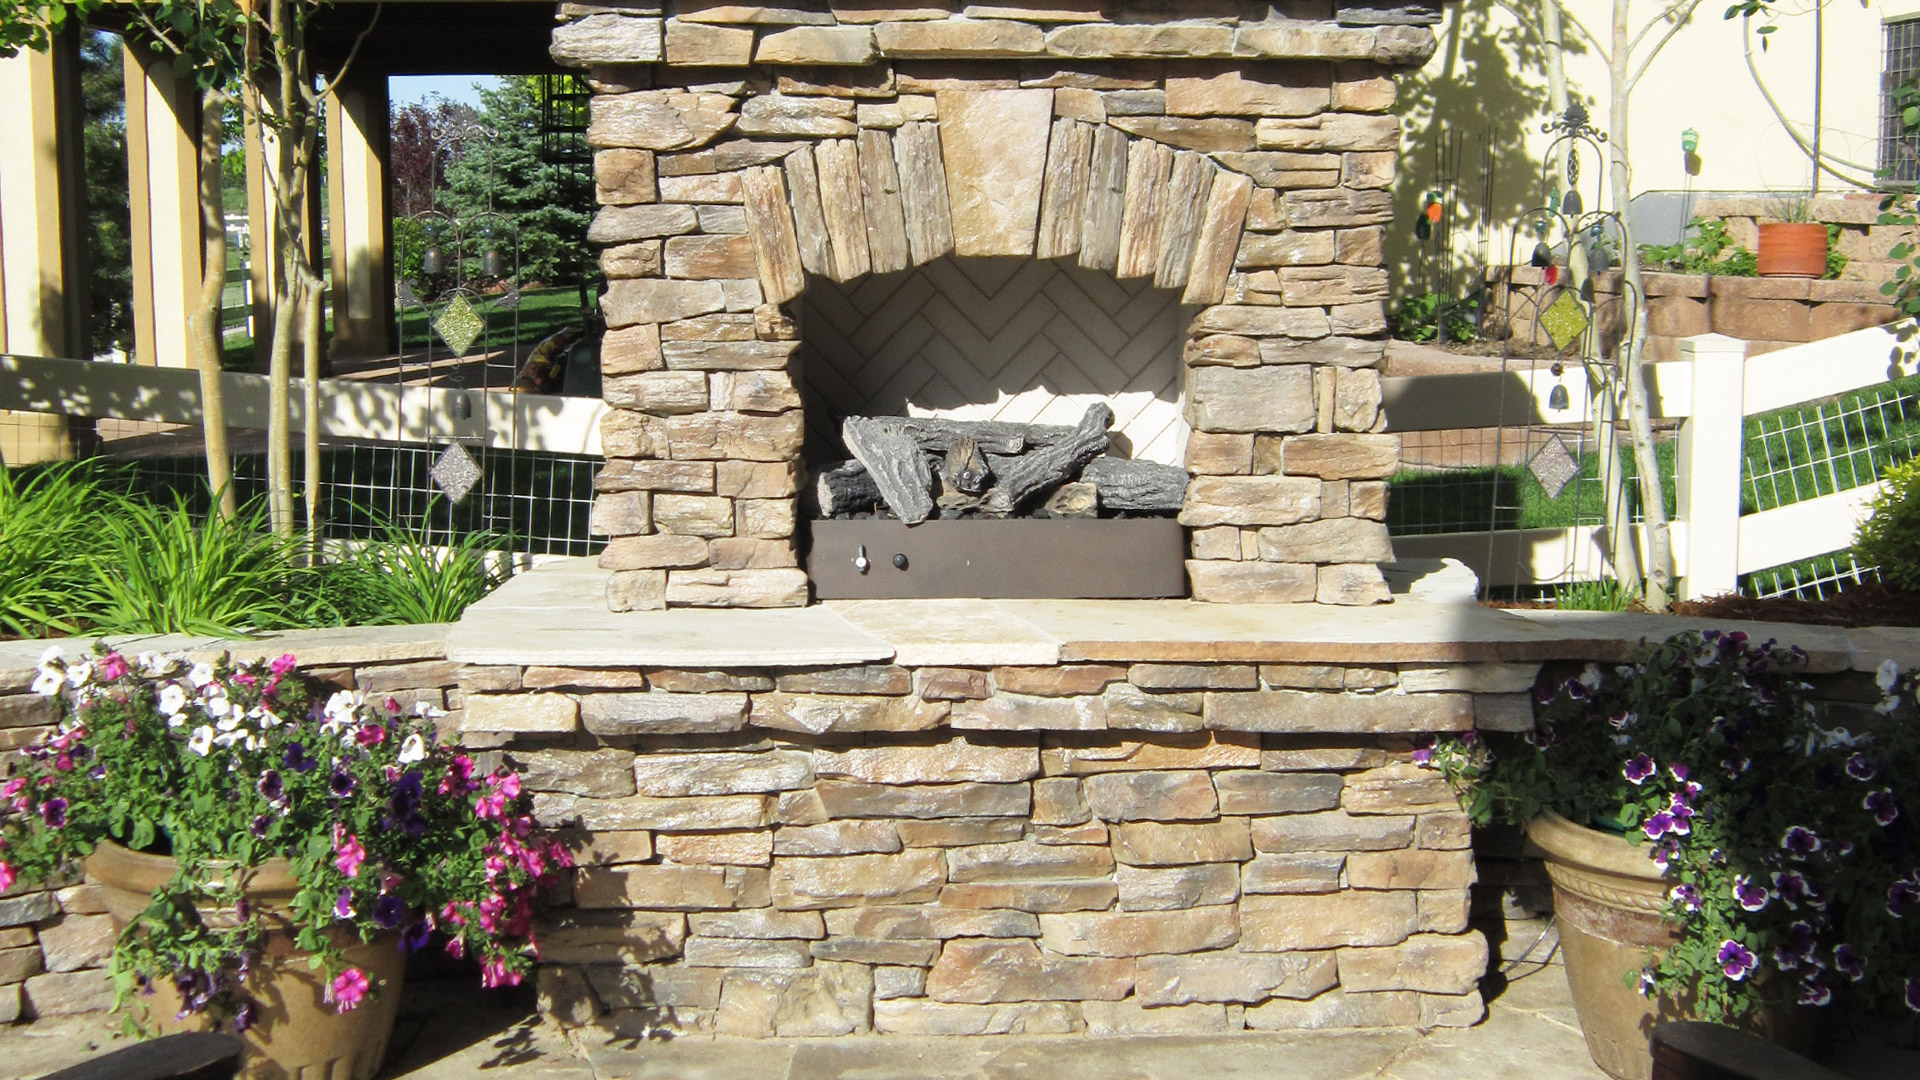 A brand new custom fireplace that was just installed in this homeowner's backyard in Loveland, CO.